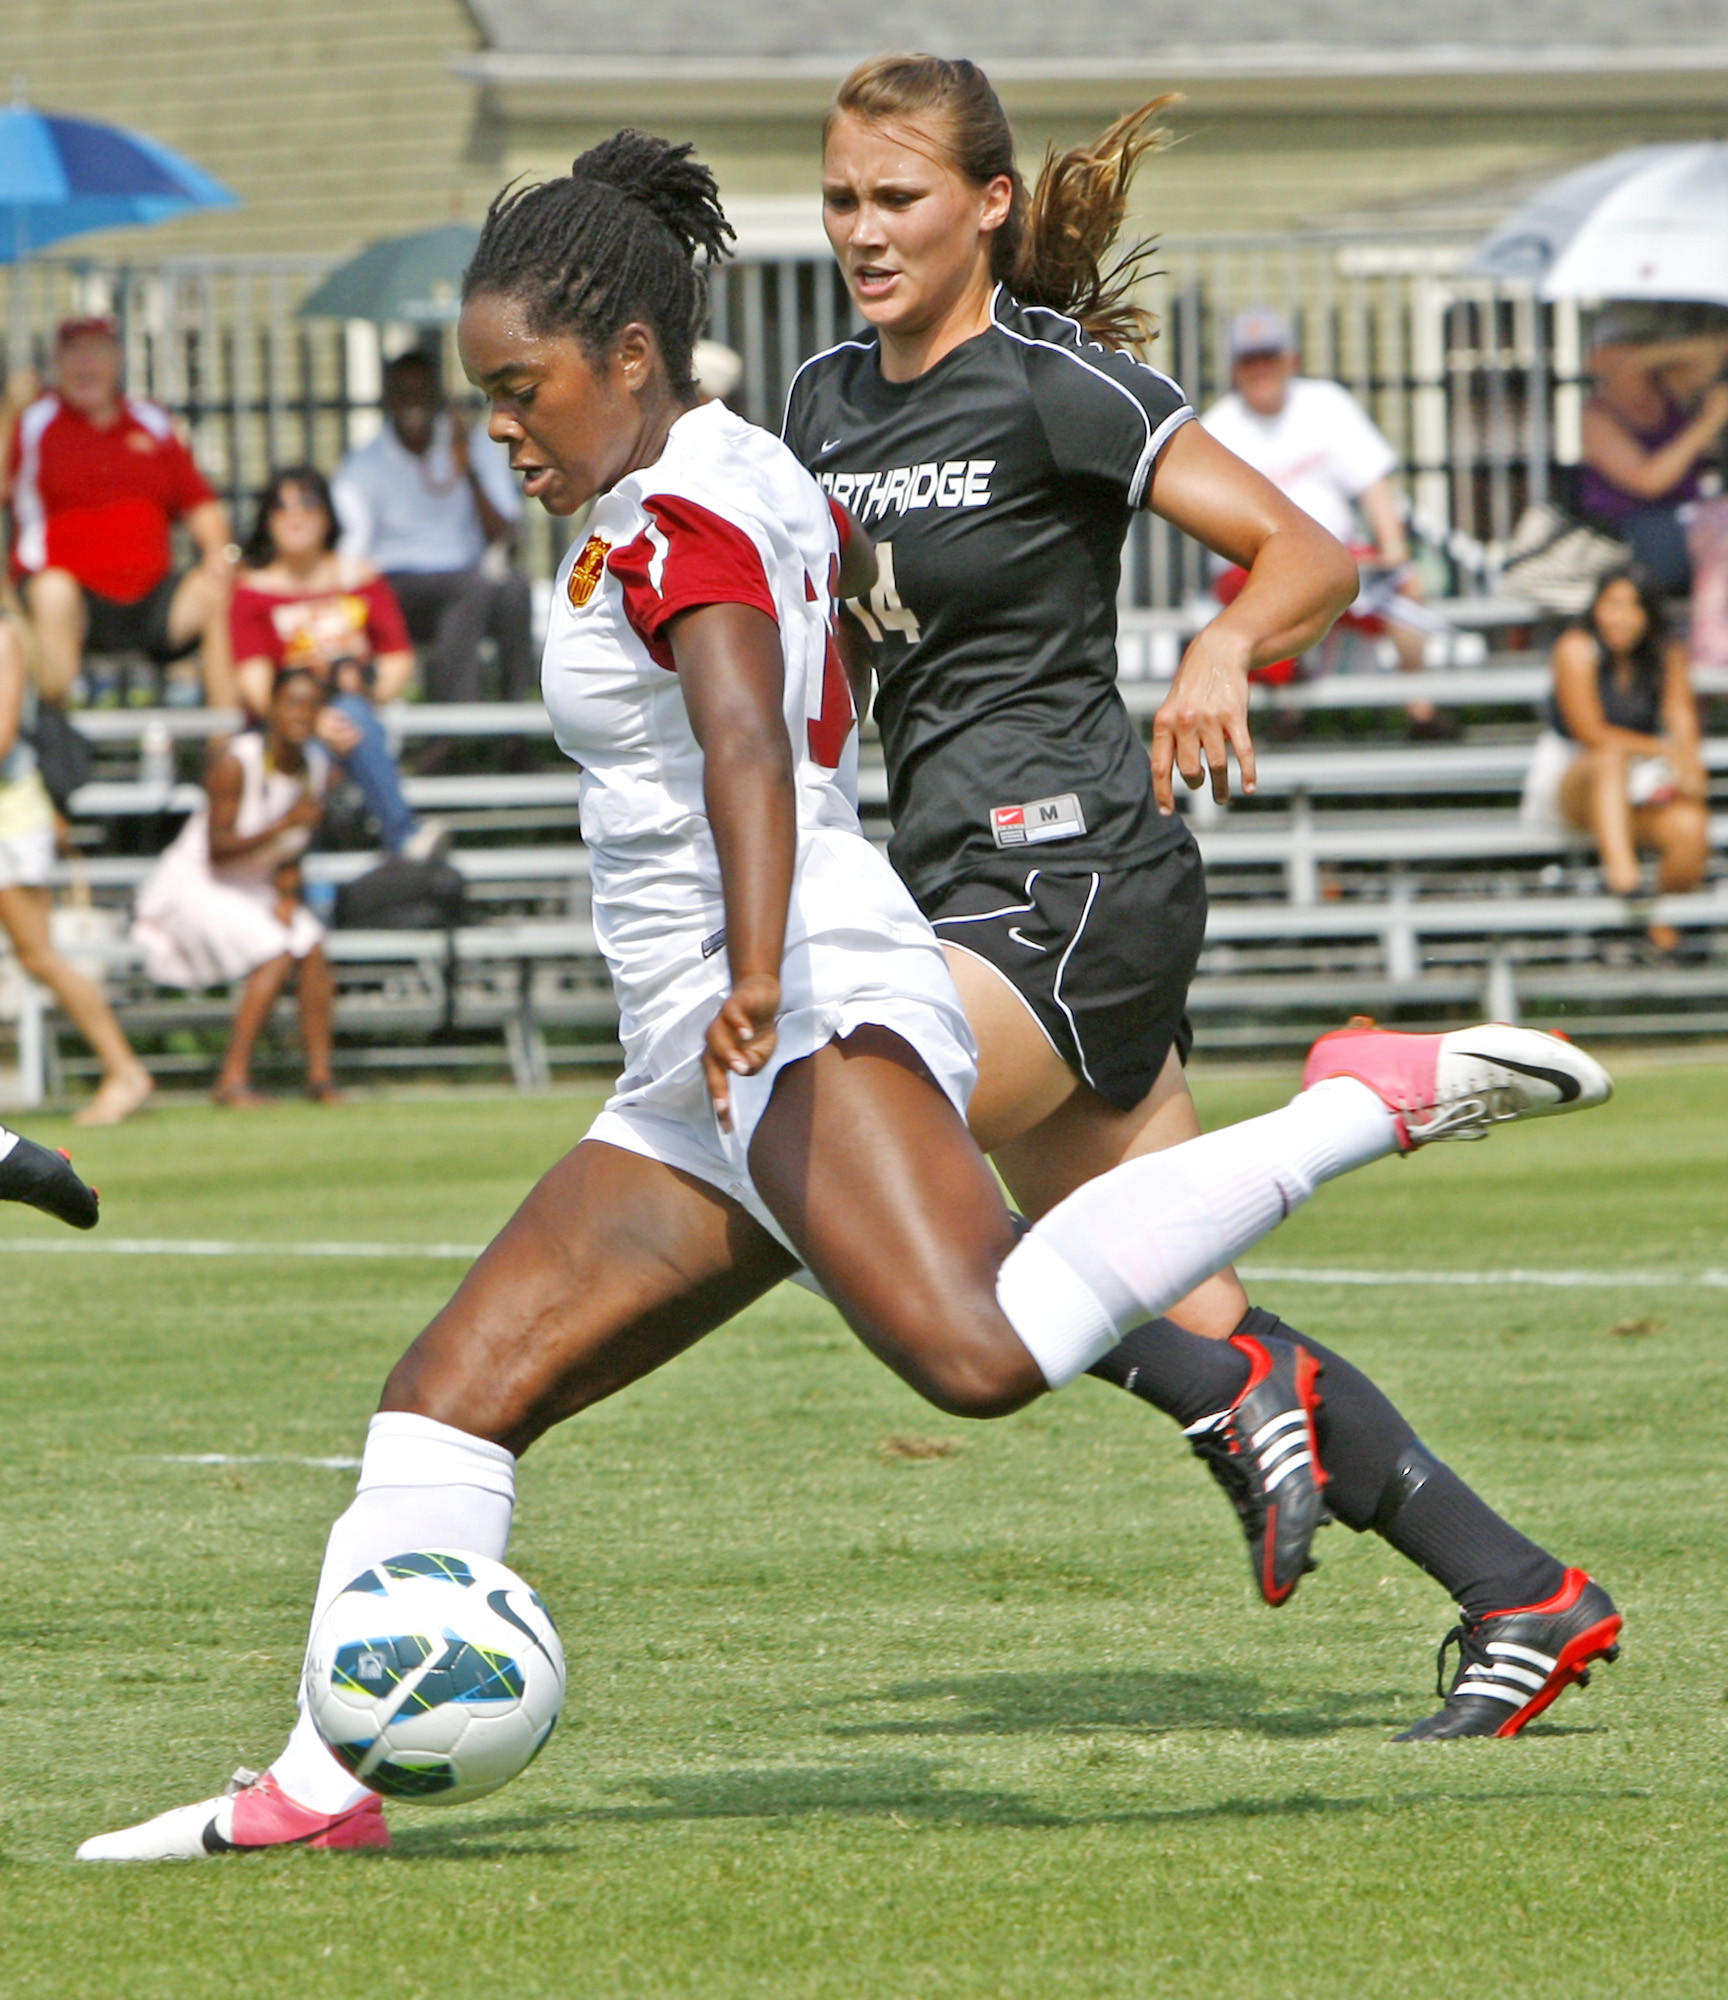 Kayla Mills of the USC women's soccer team is a Flintridge Sacred Heart Academy graduate. Mills was recently named a 2013 National Soccer Coaches Association of America Girls High School All-American for her play during the 2012-13 season.